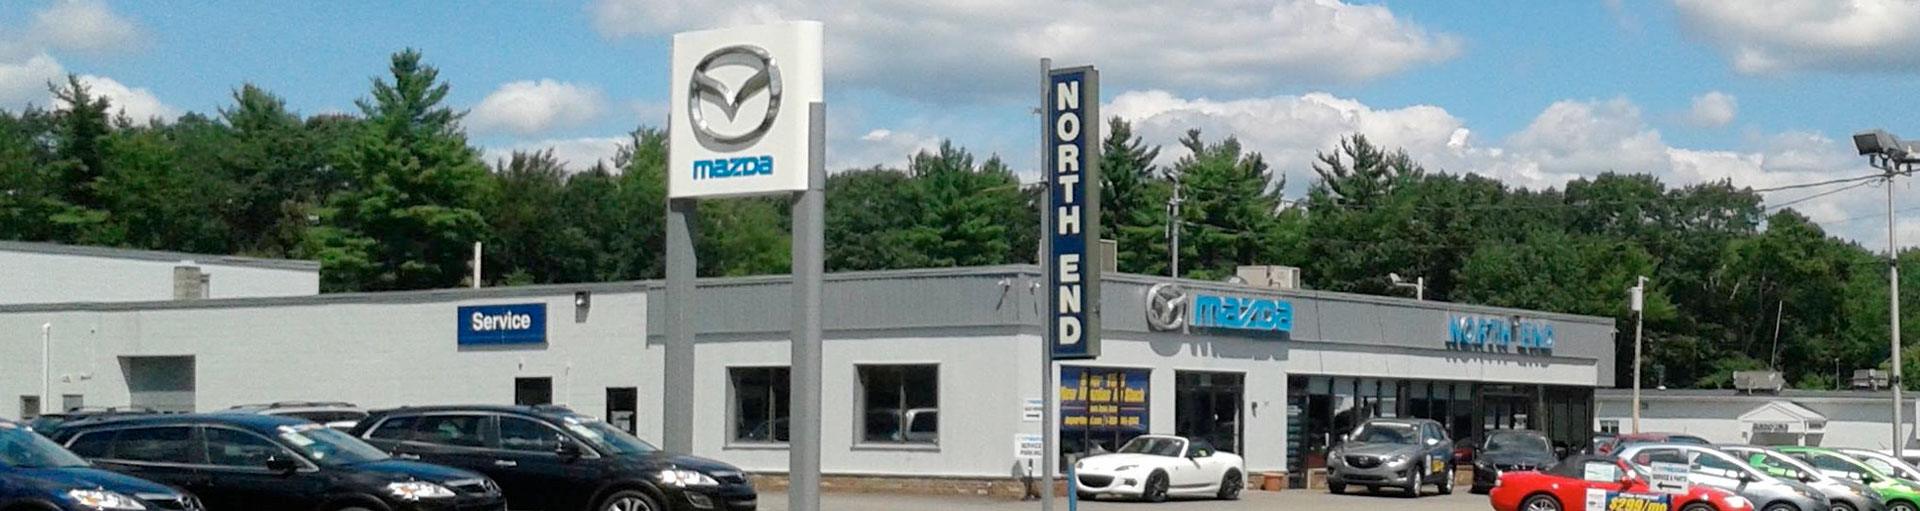 North End Mazda Service Department